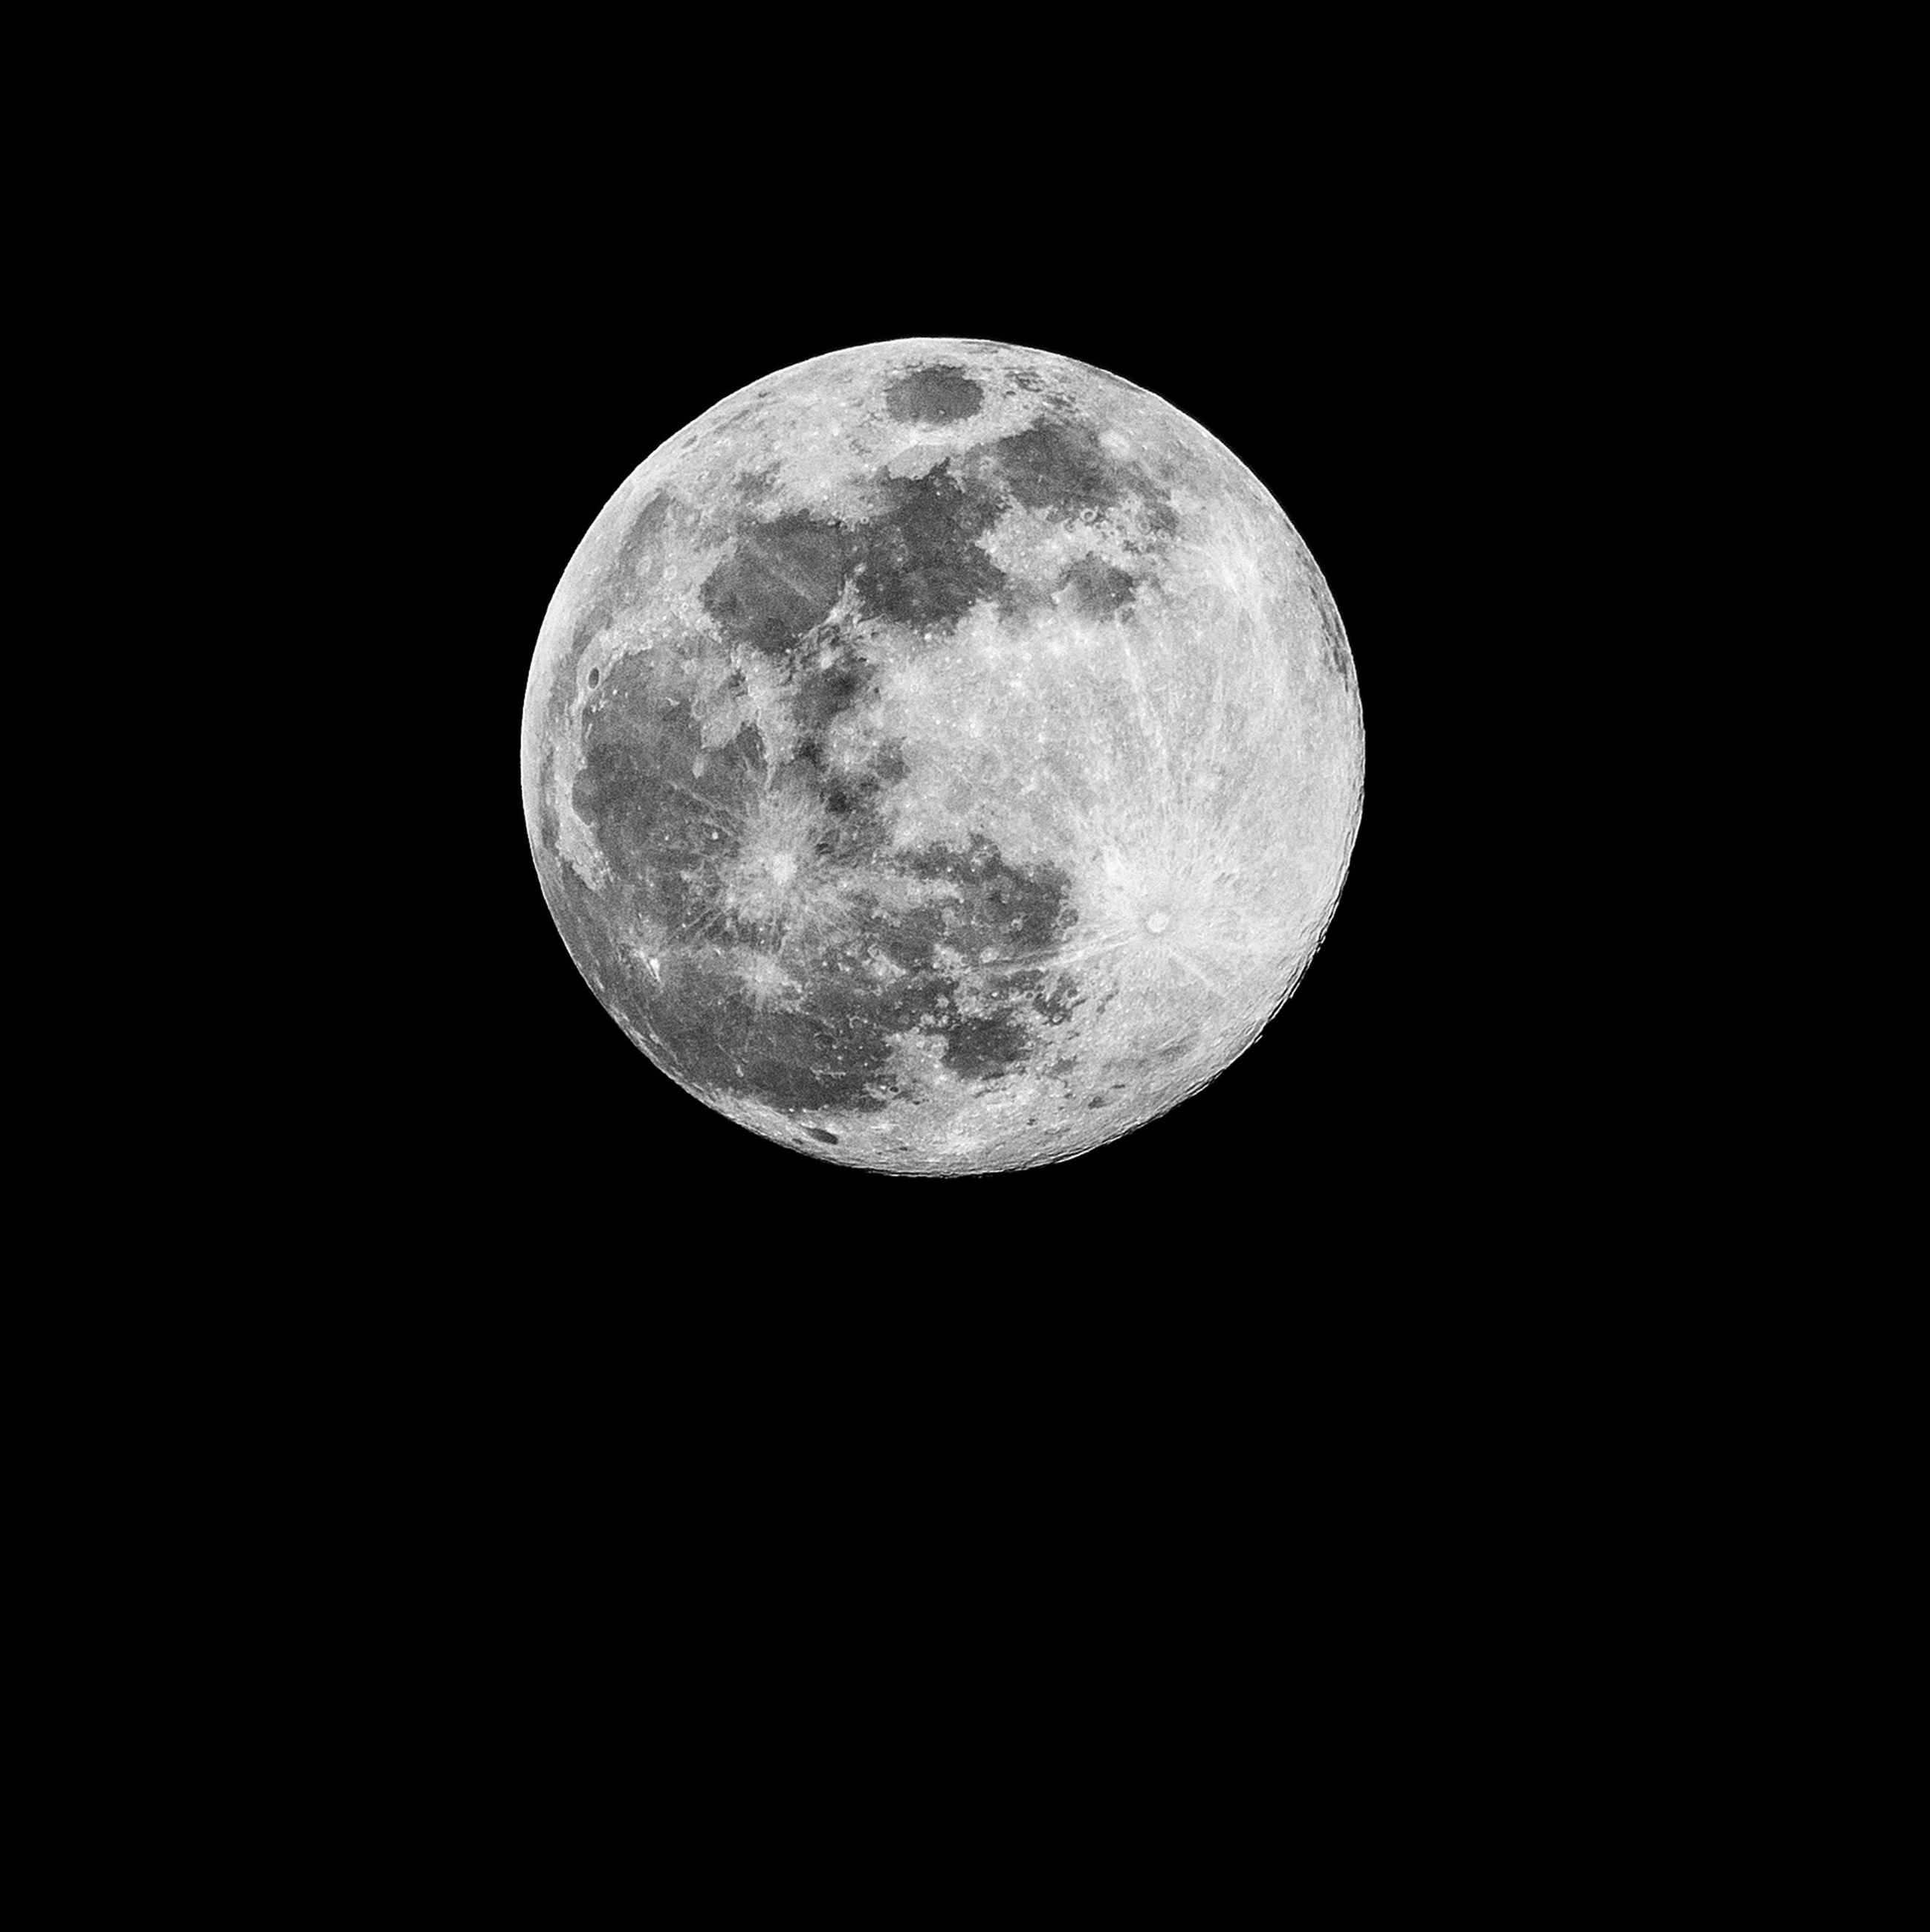 astronomy, space, night, moon, sky, planetary moon, circle, moon surface, geometric shape, beauty in nature, shape, no people, full moon, scenics - nature, nature, tranquility, copy space, low angle view, majestic, dark, outdoors, black background, astrology, moonlight, space and astronomy